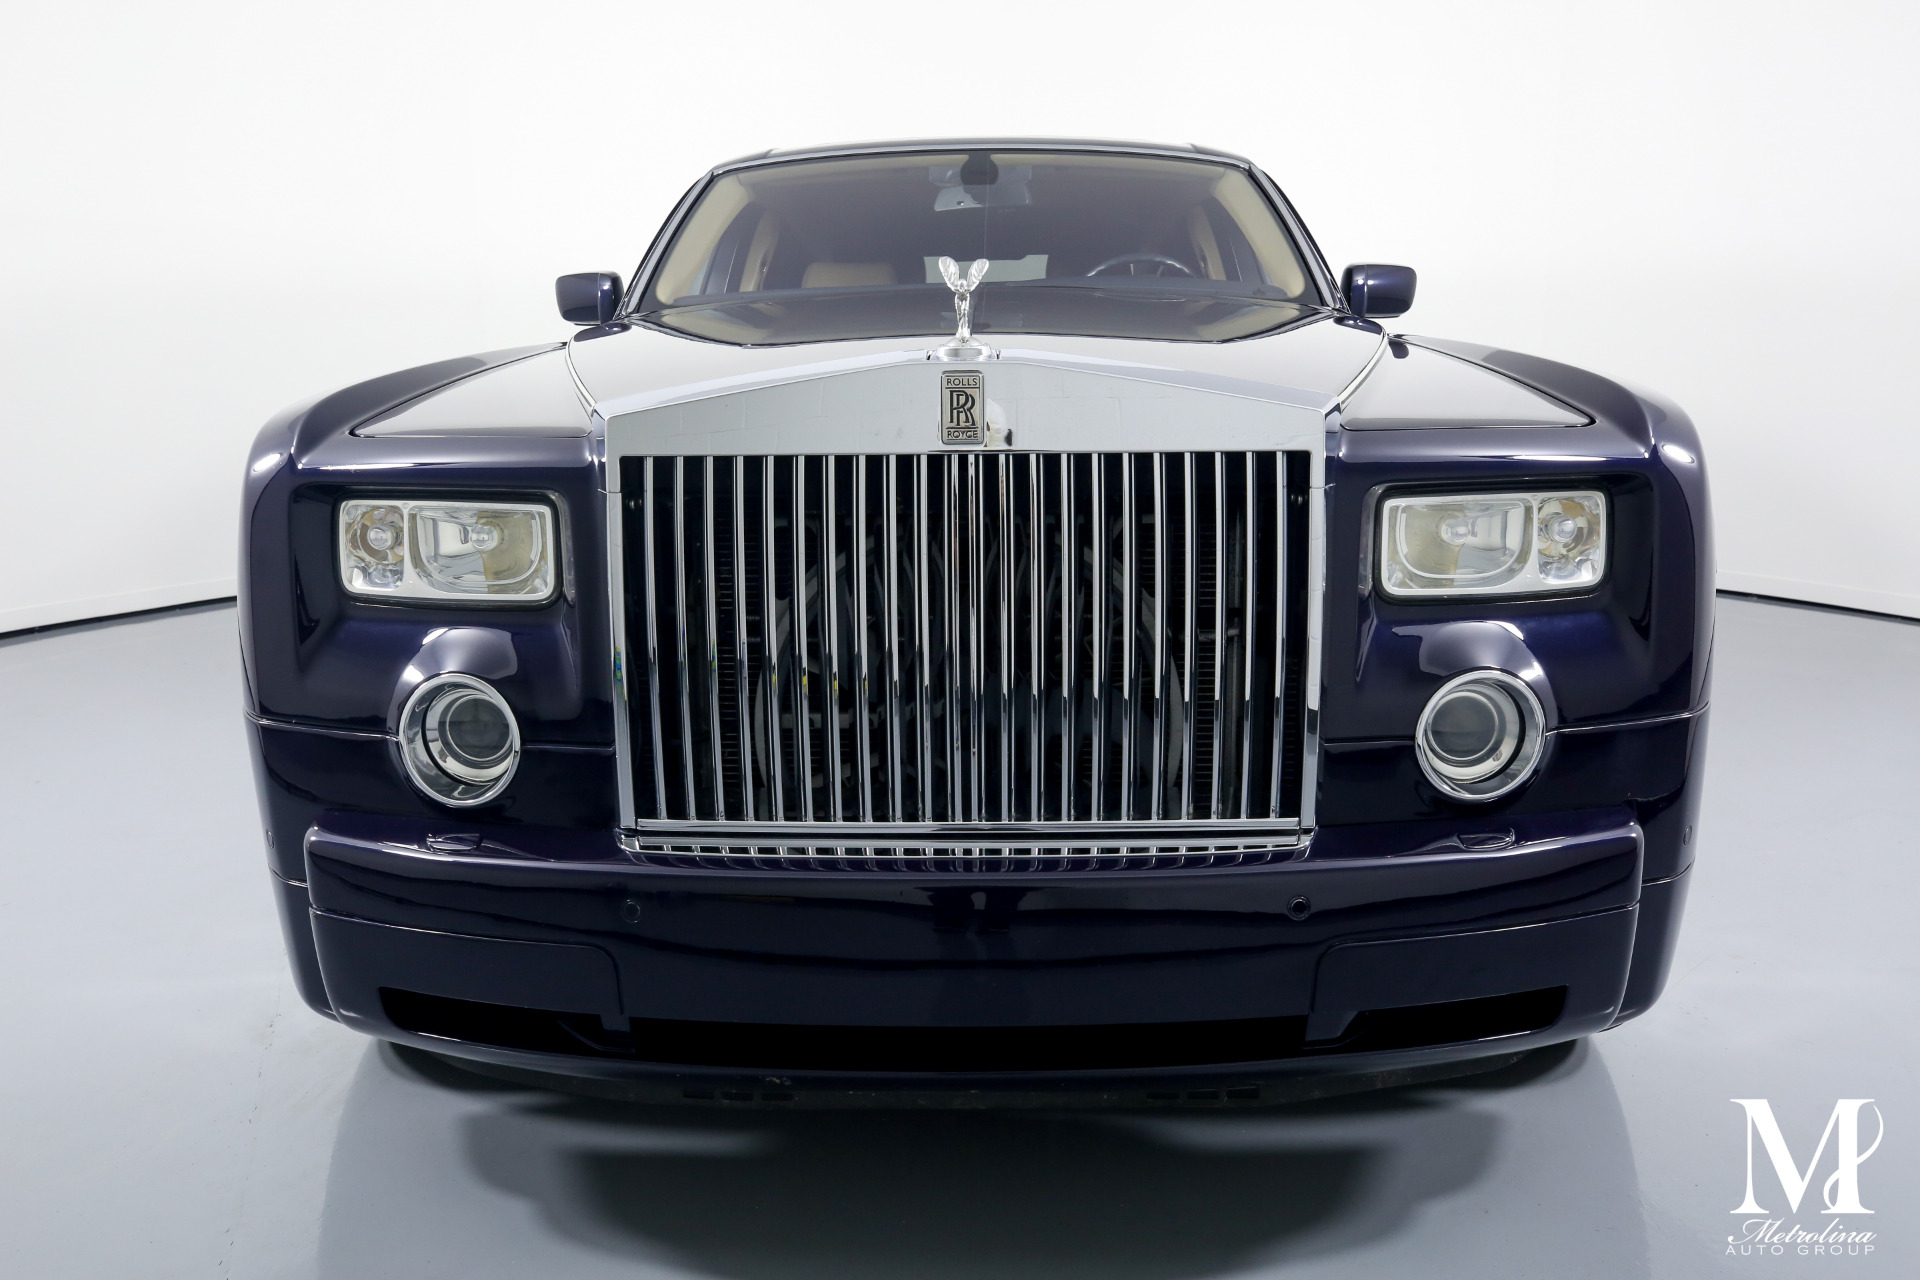 Used 2005 Rolls-Royce Phantom for sale Sold at Metrolina Auto Group in Charlotte NC 28217 - 3